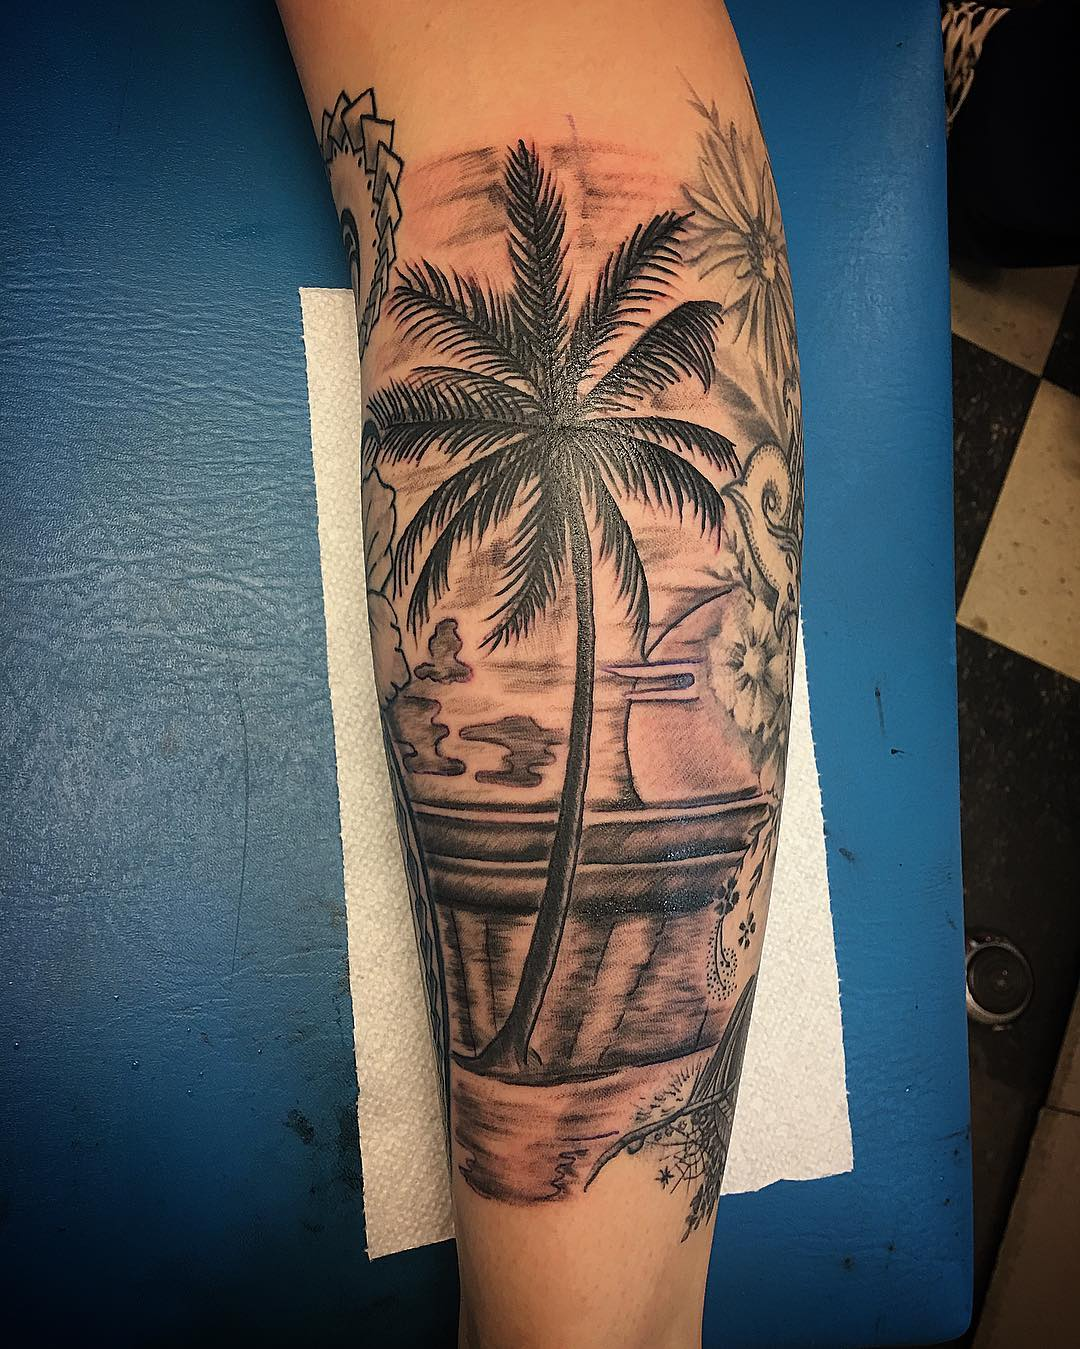 Best Tattoo Design Ideas: 120+ Best Palm Tree Tattoo Designs And Meaning